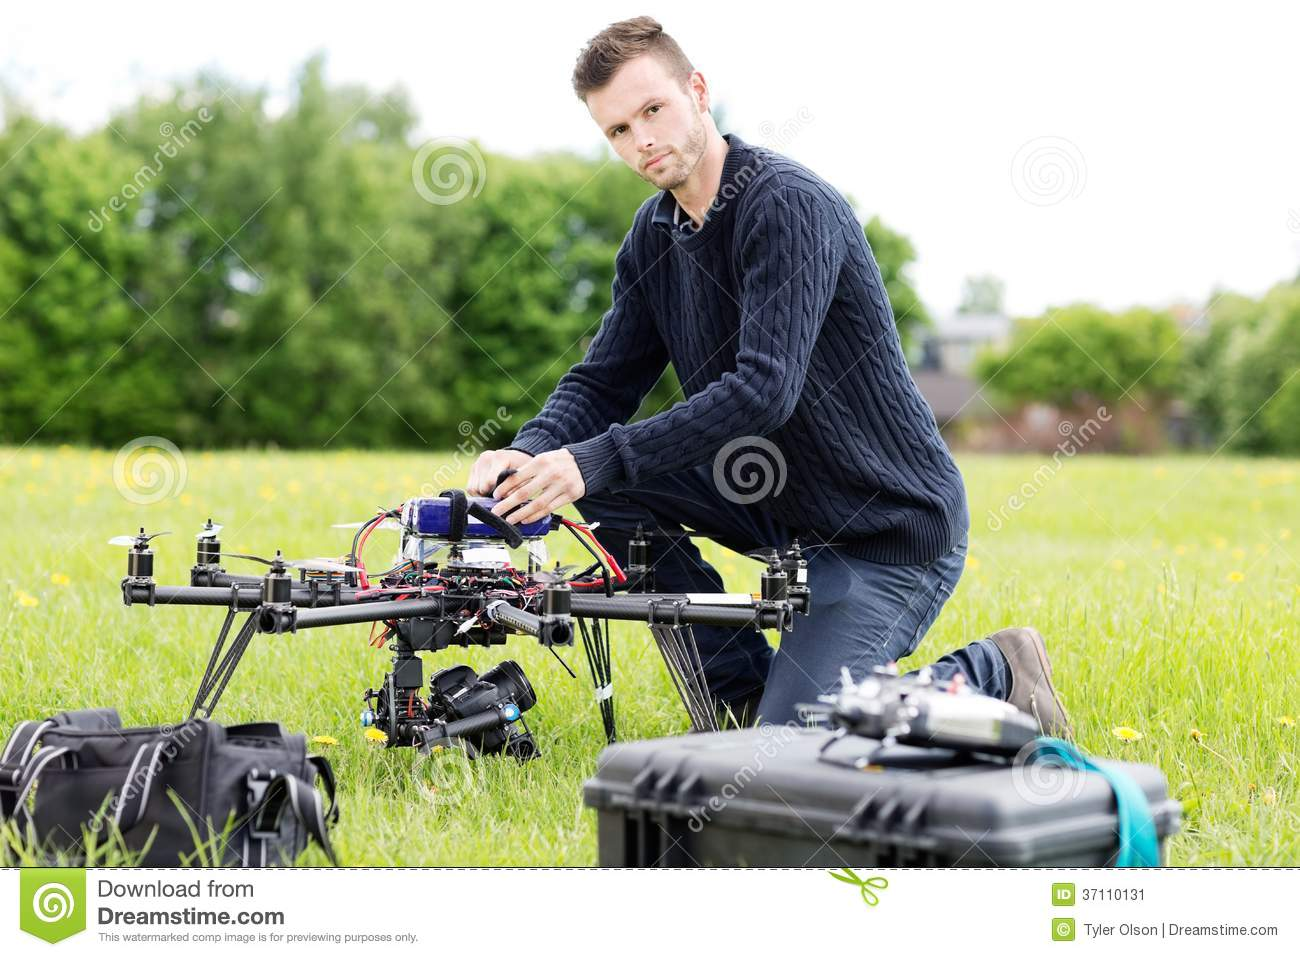 Young Engineer Preparing Spy Drone in Park